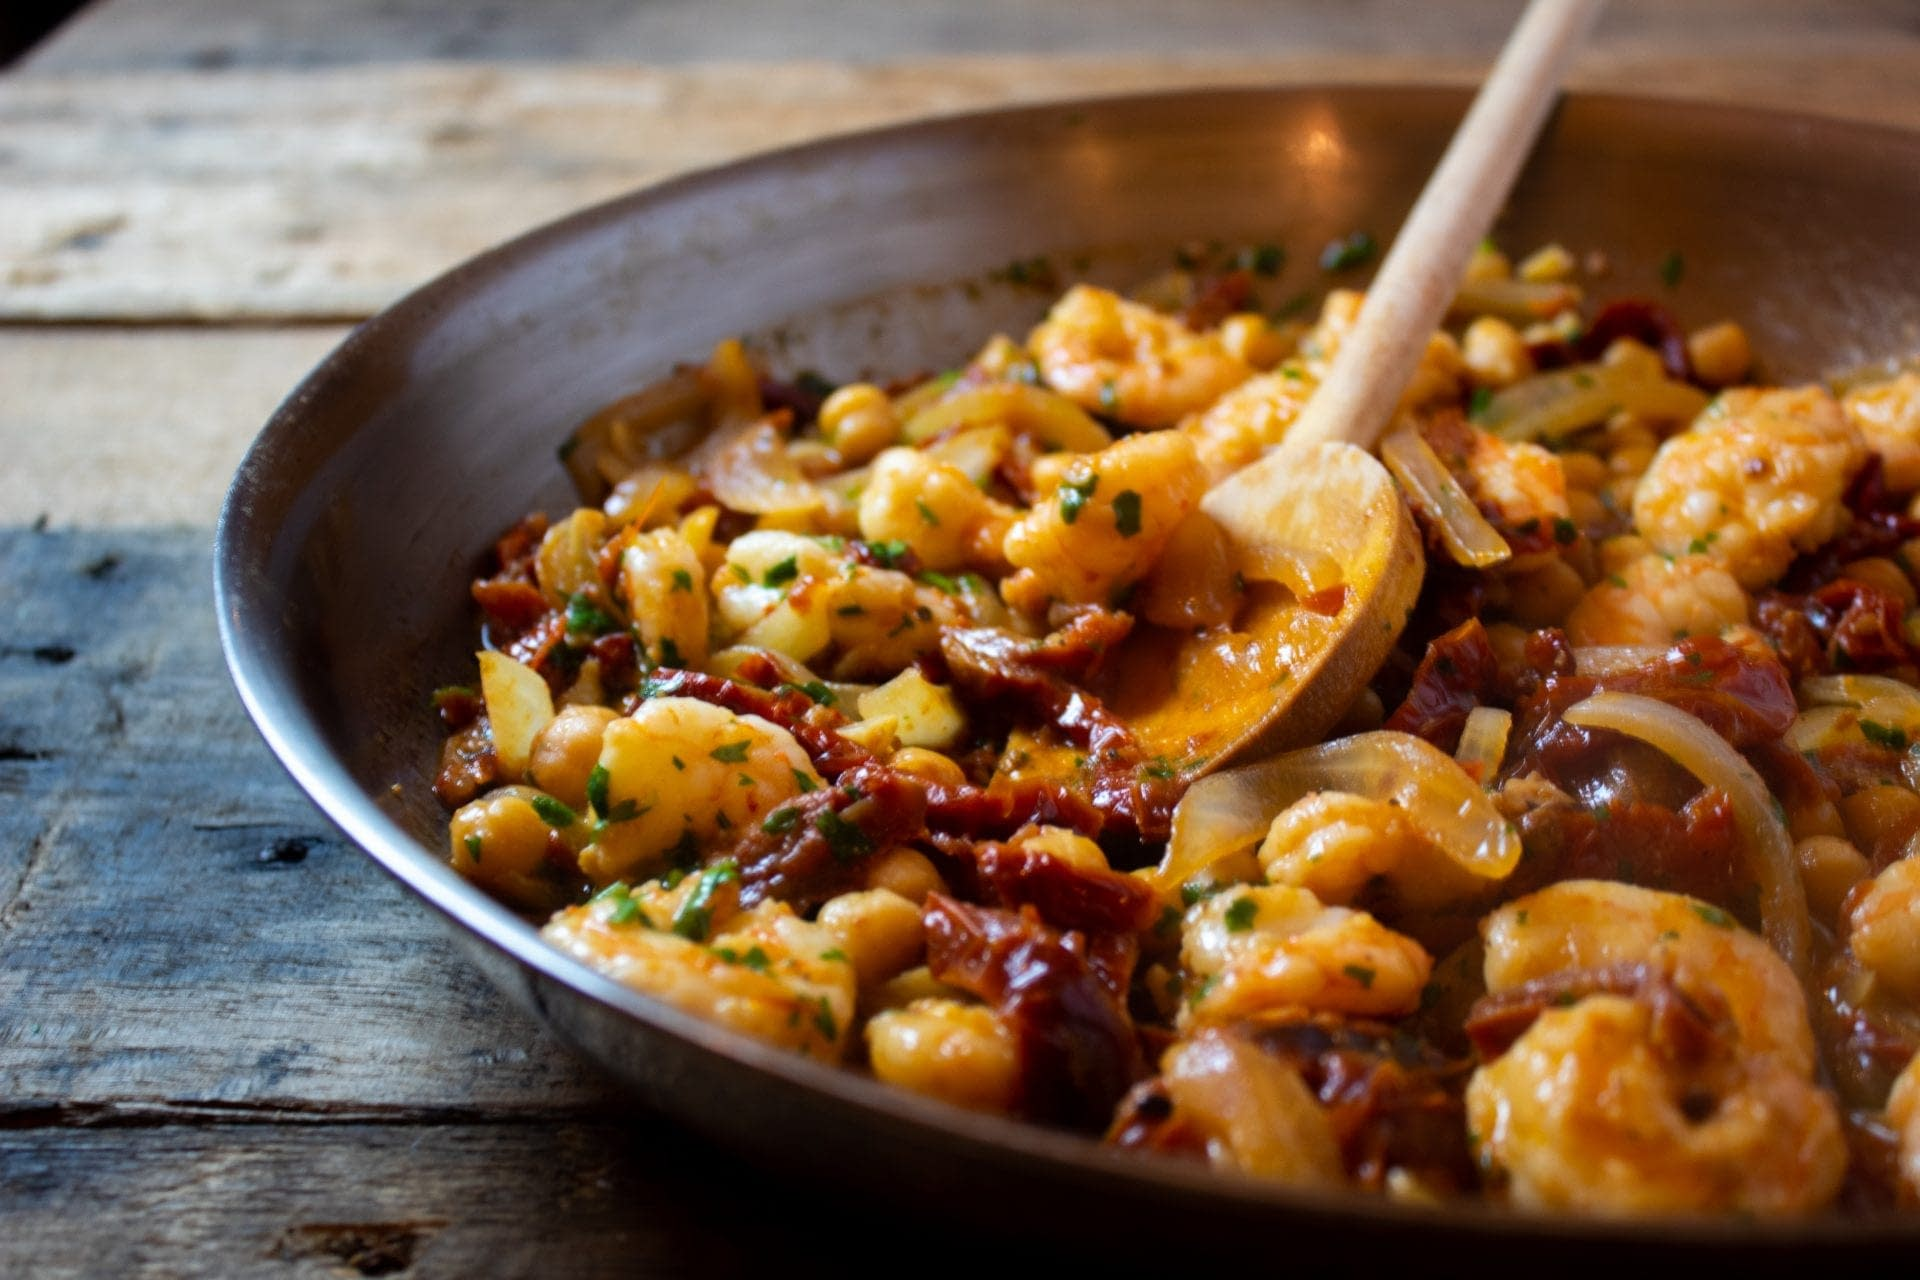 Shrimp and Sun-Dried Tomatoes with Garlic and Olive Oil